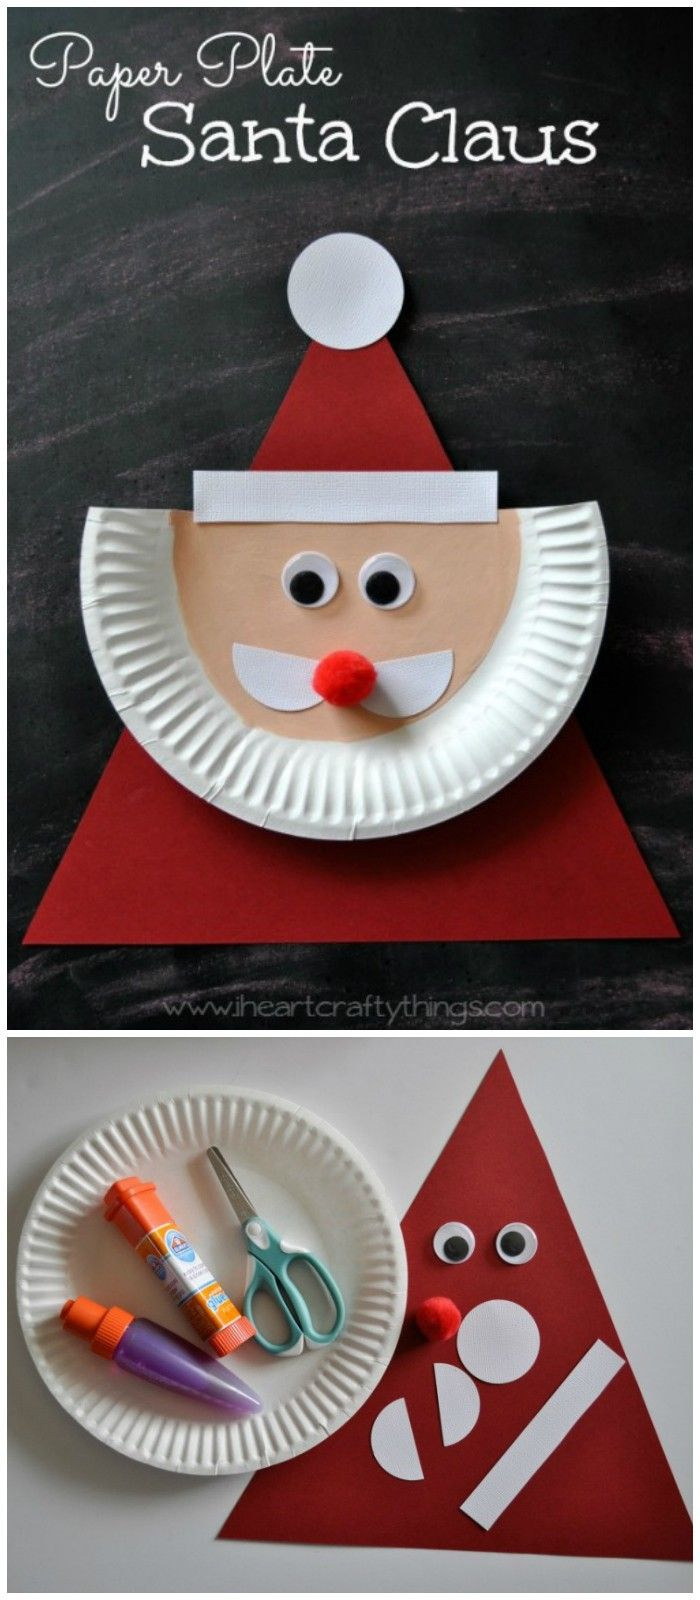 25 Interesting Ideas to Make Easy Christmas Crafts